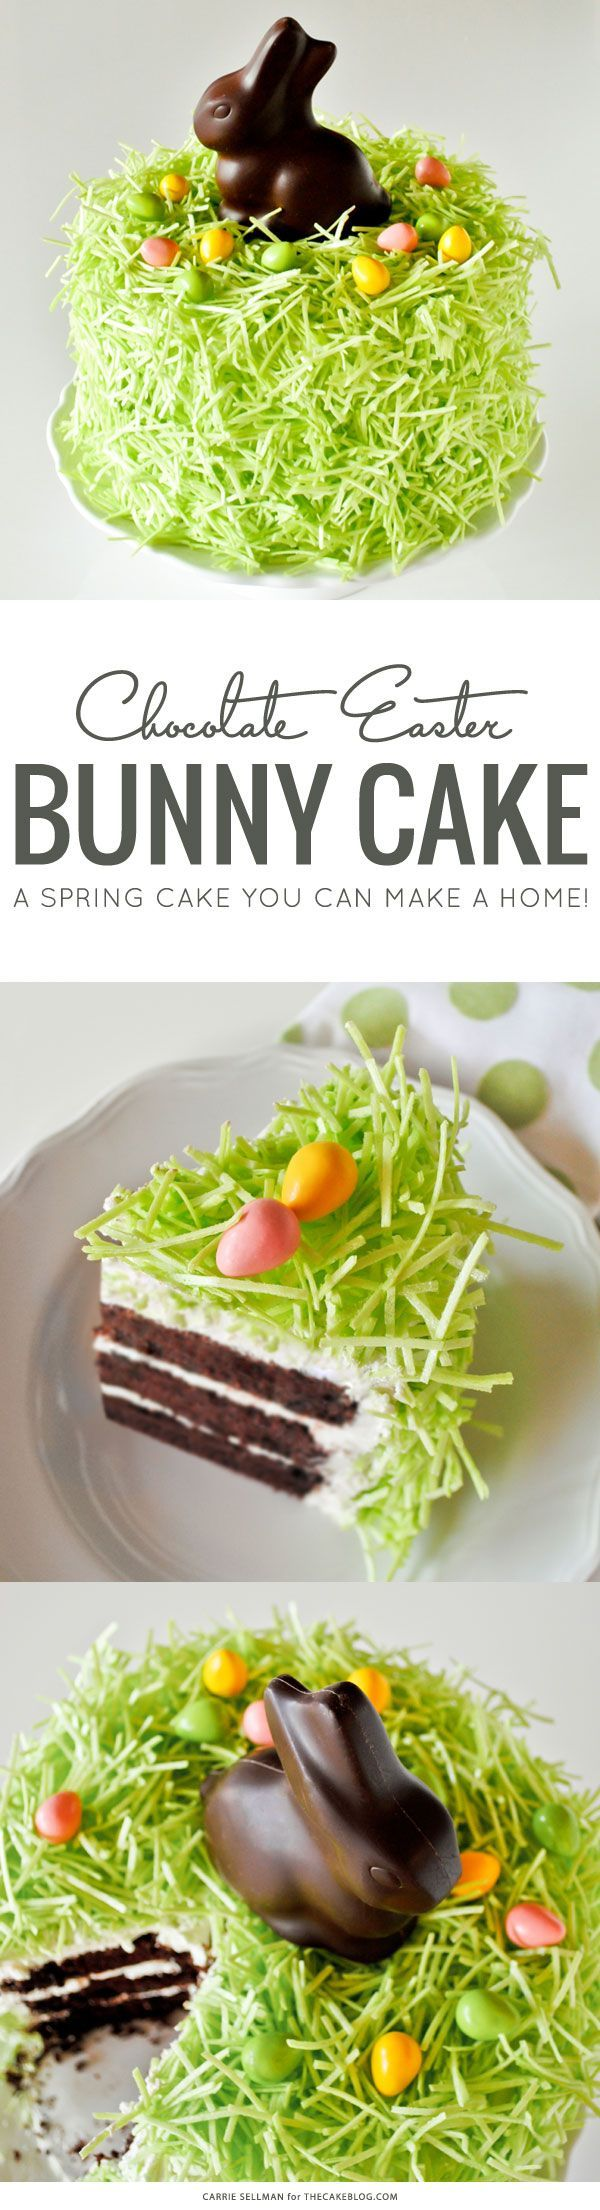 Chocolate Easter Bunny cake - a spring cake you can make at home! (desserts, dessert recipes, cake recipes)